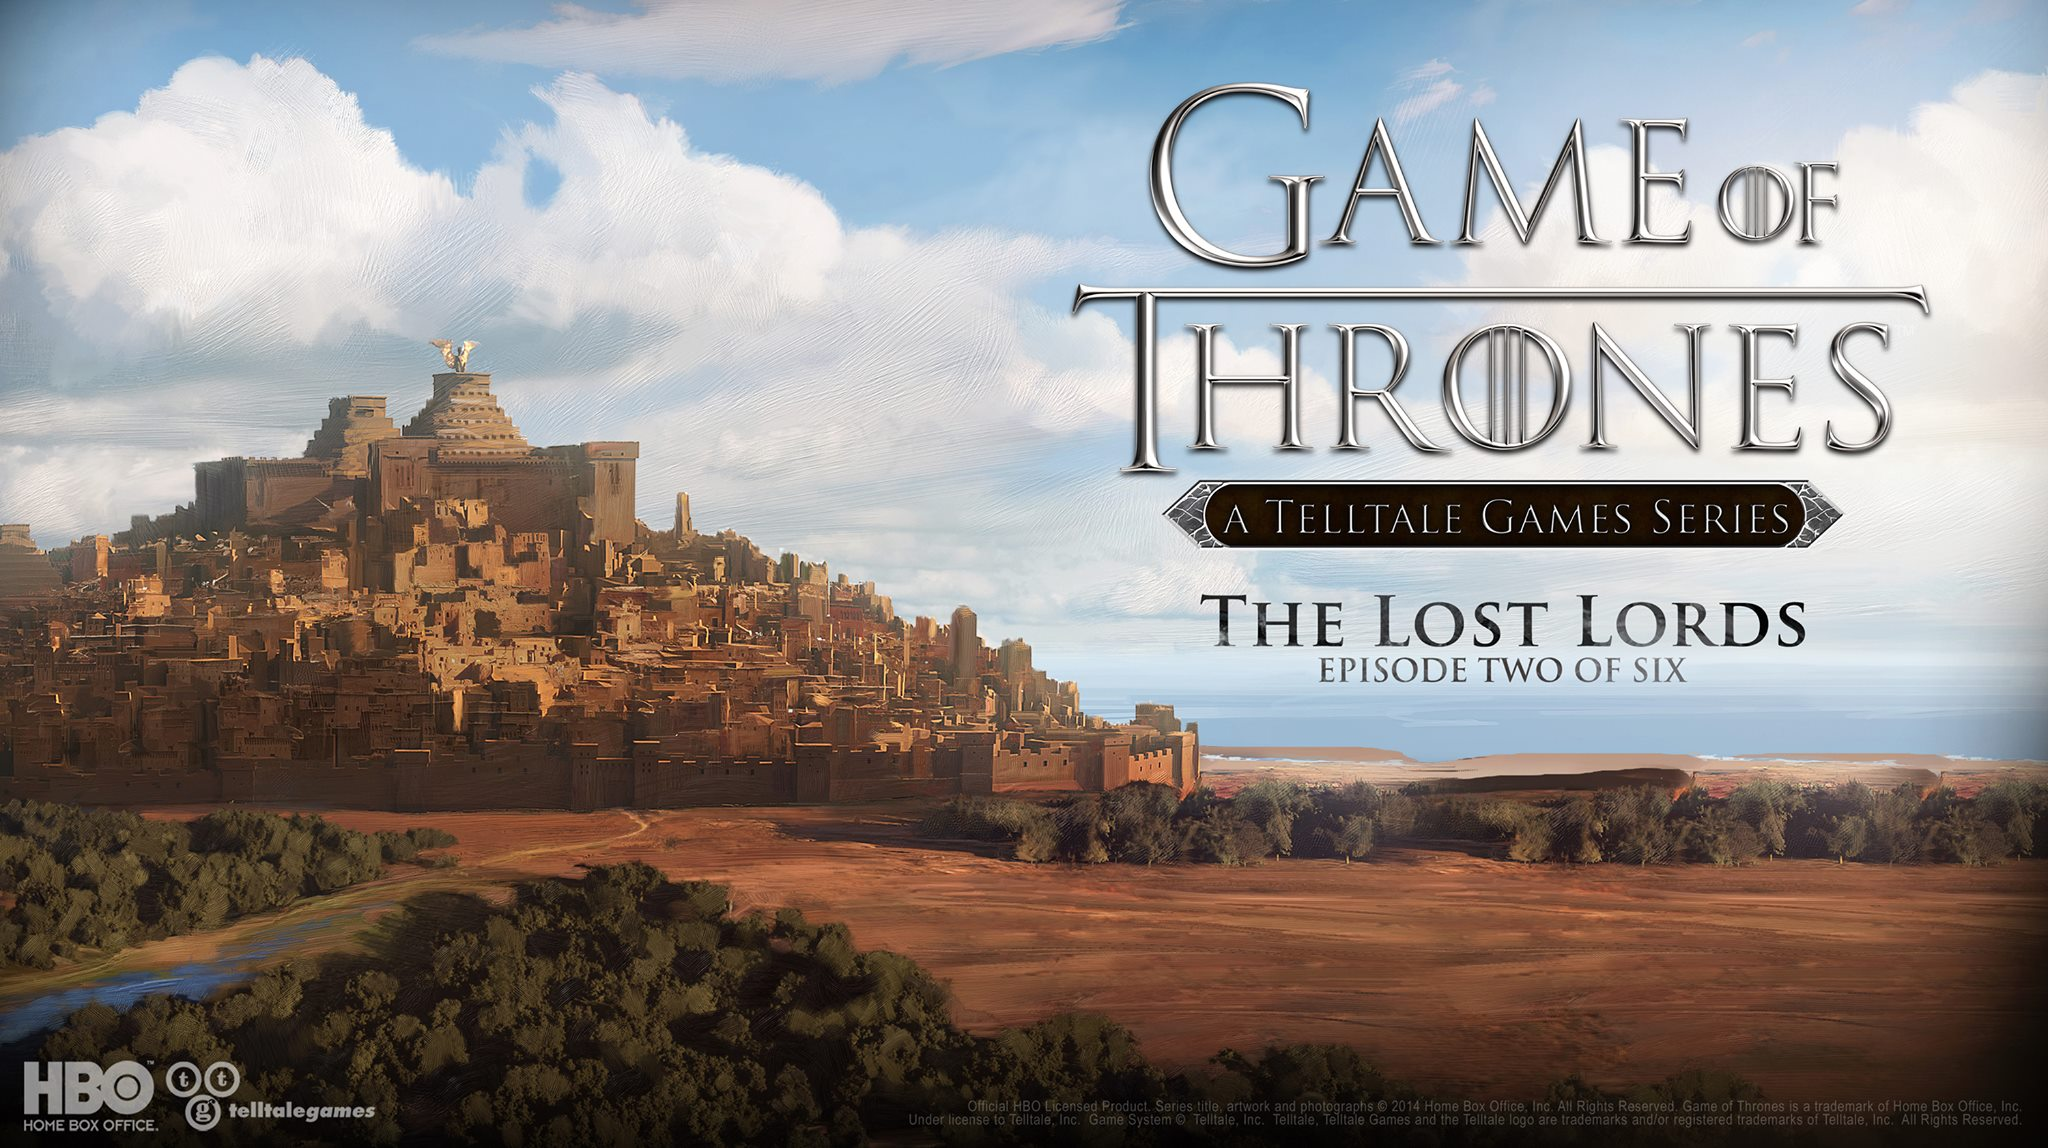 Take a look at the Game of Thrones: The Lost Lords launch trailer